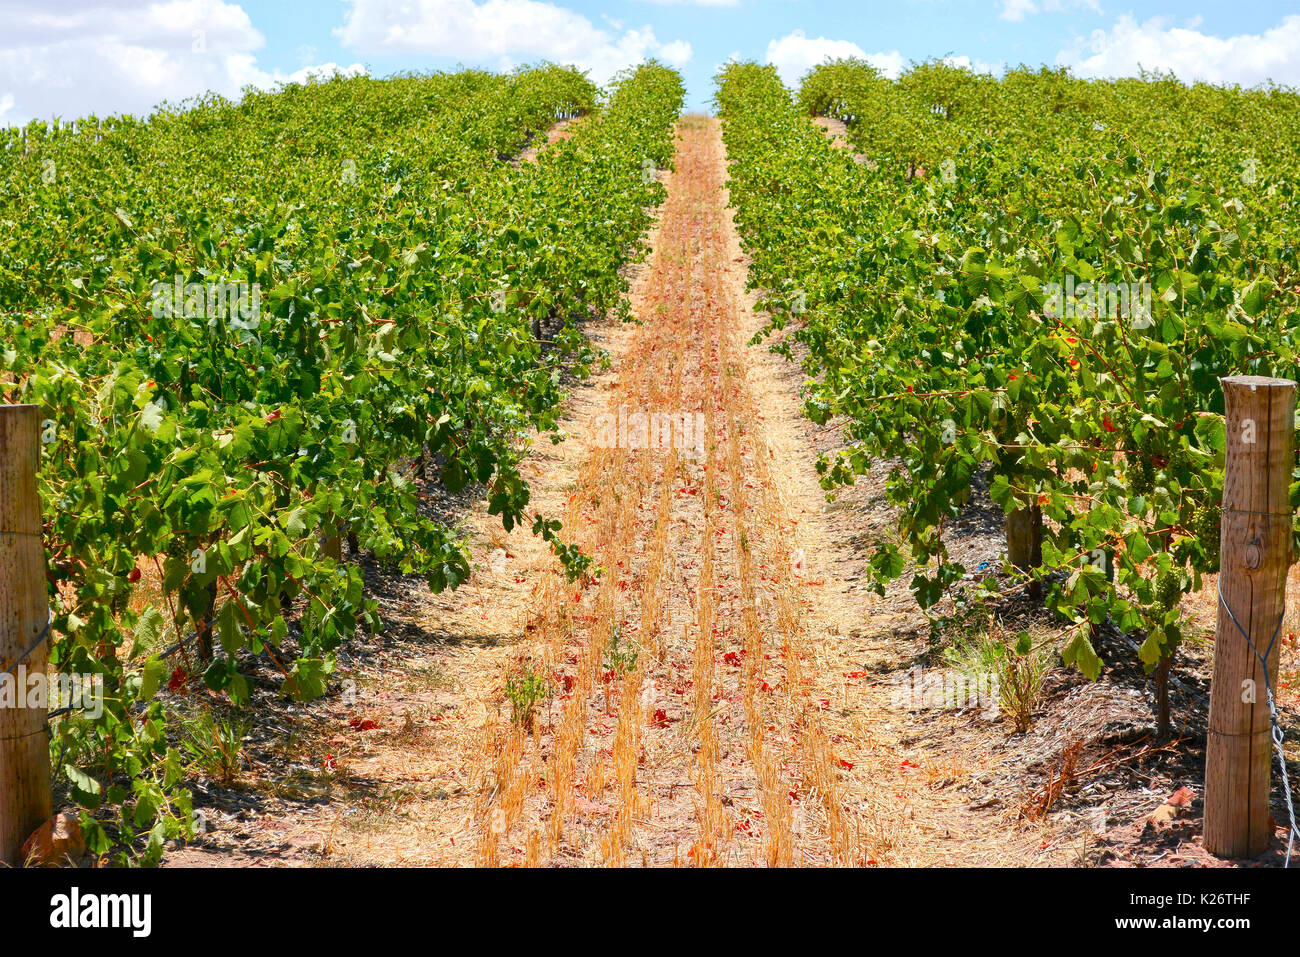 Australian wineries rows of grape vines taken on a bright and sunny day. - Stock Image